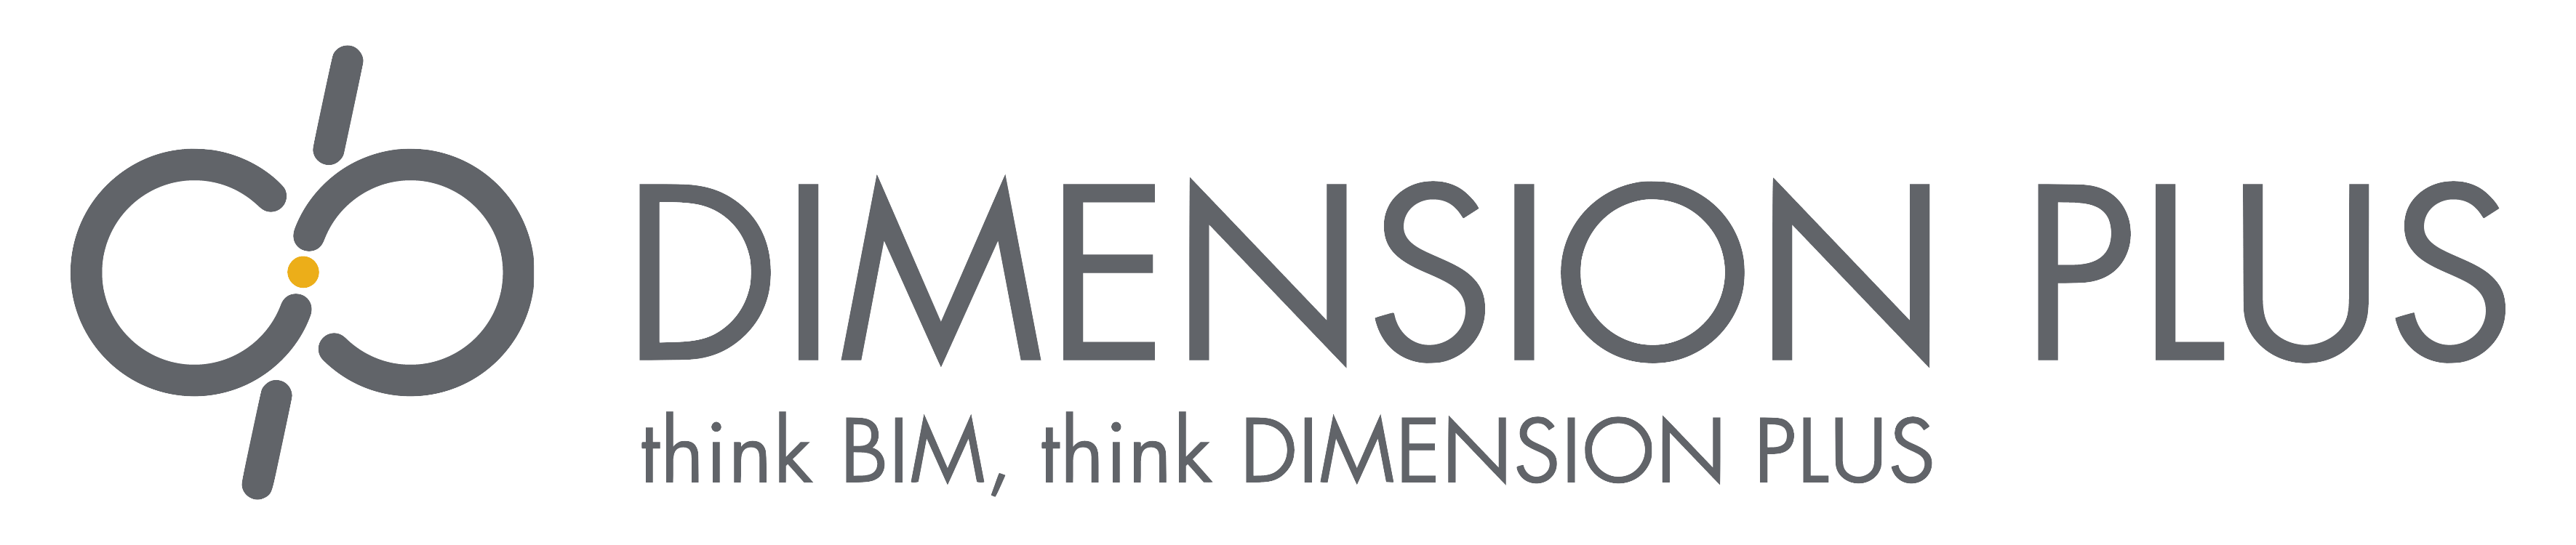 DIMENSION PLUS Logo